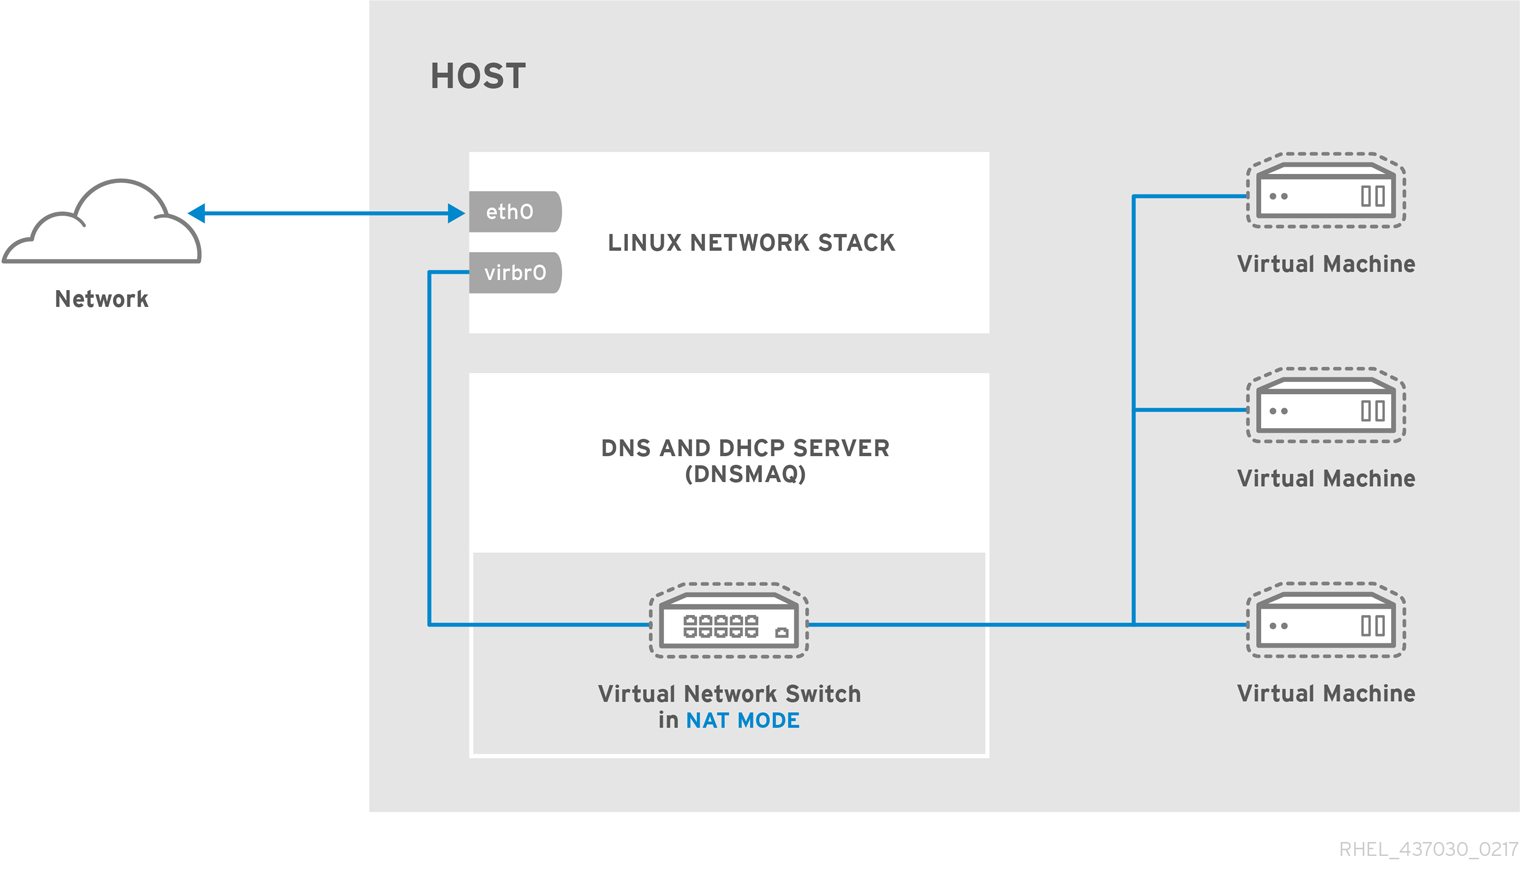 vn 08 network overview